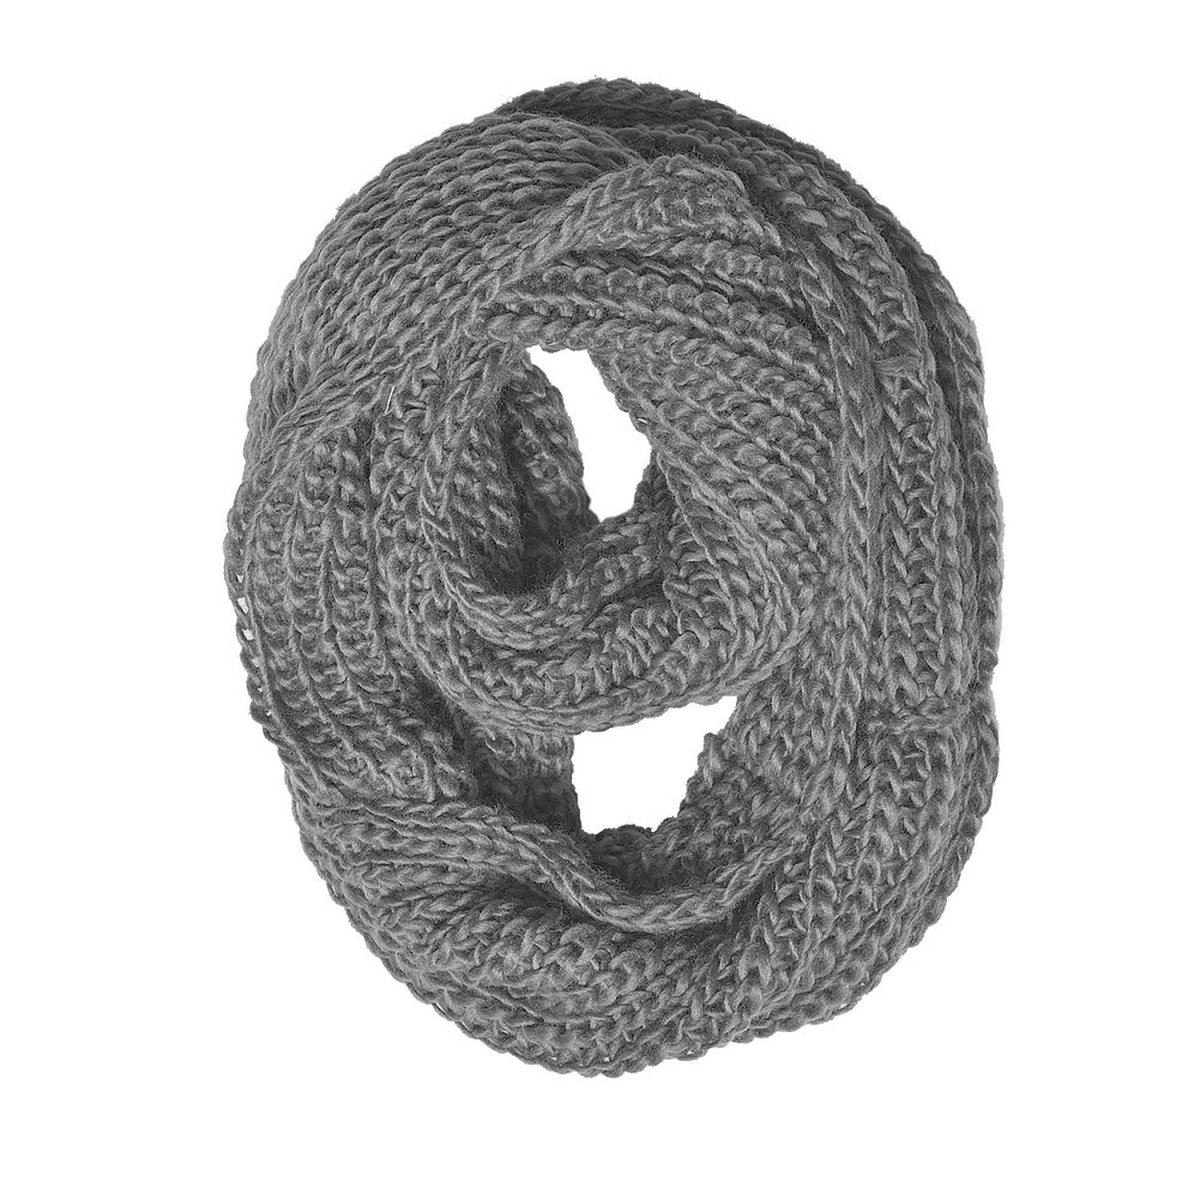 Loom Knit An Infinity Scarf - An Easy Project For Loom Knitting Beginners